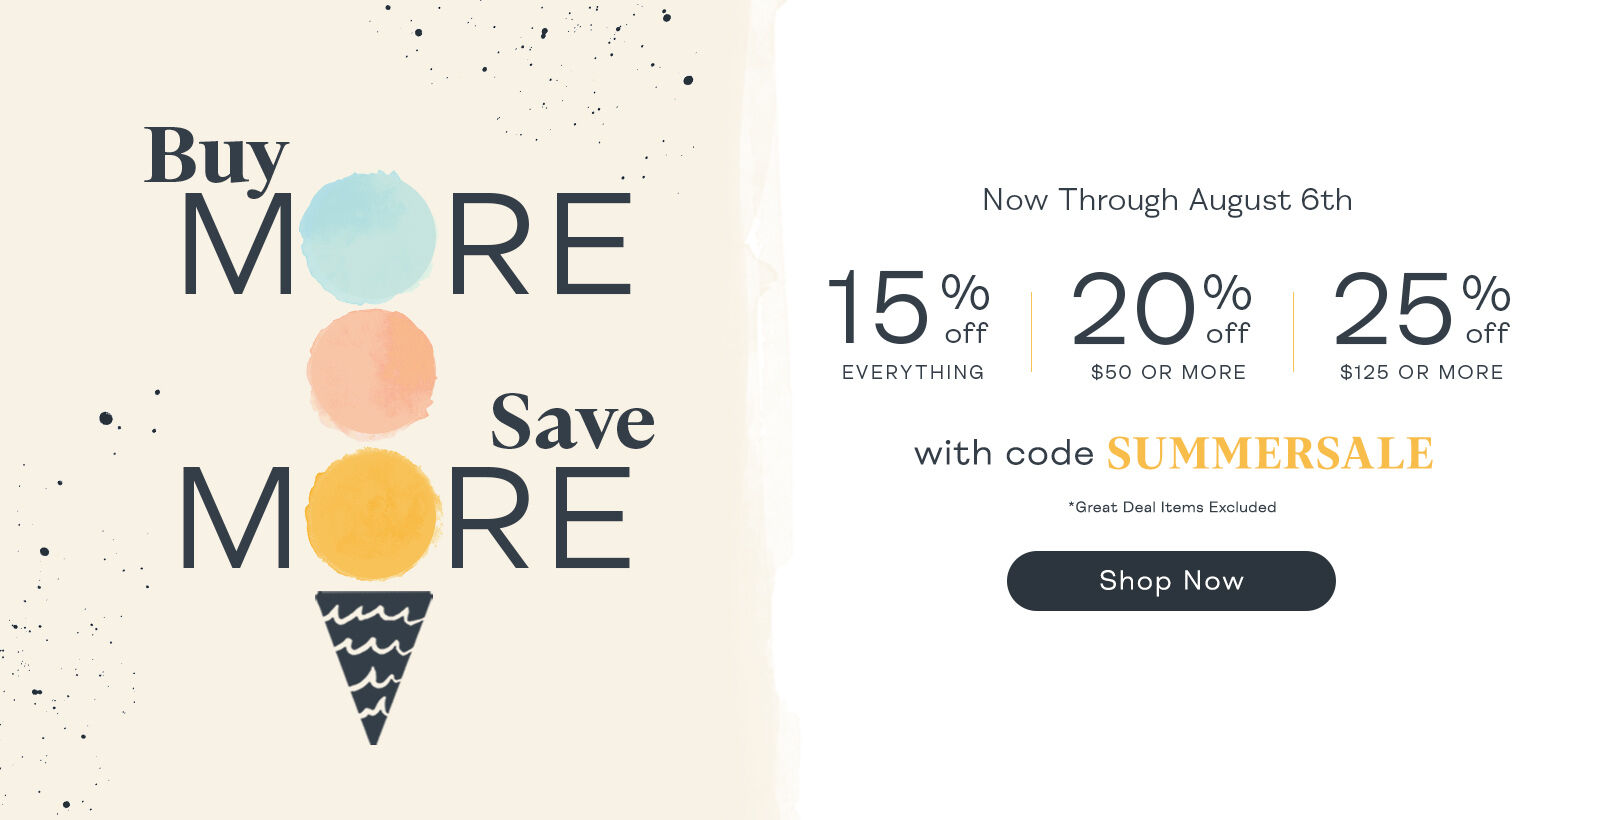 Buy More Save More with SUMMERSALE